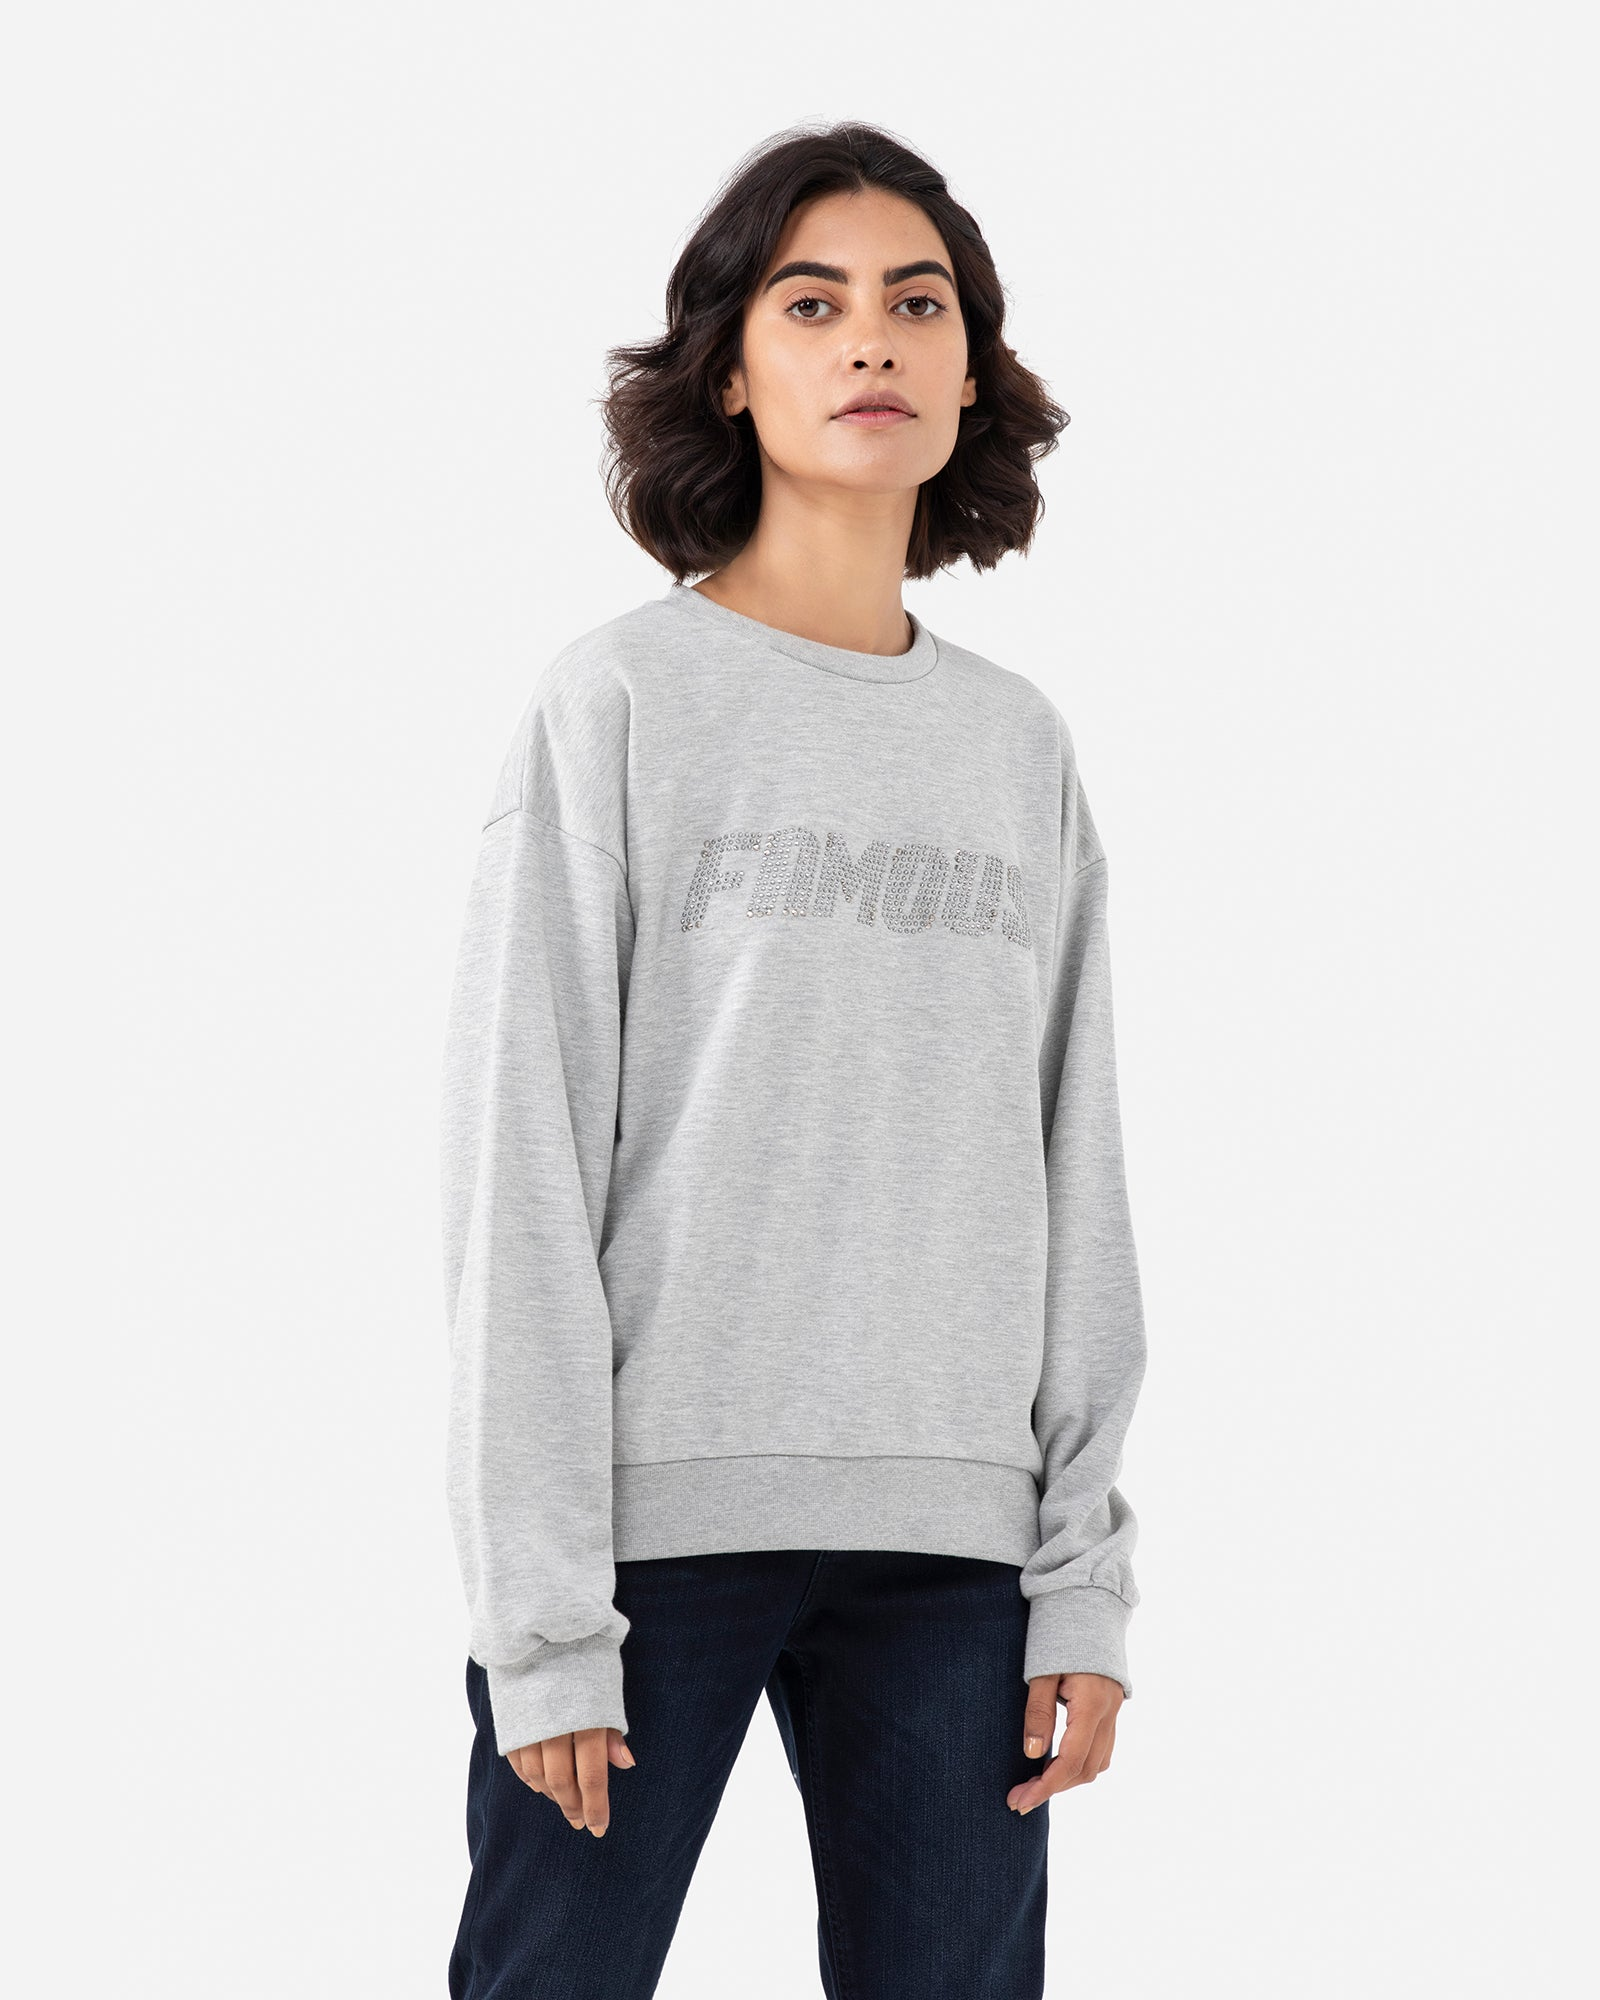 Embellished Graphic Sweatshirt